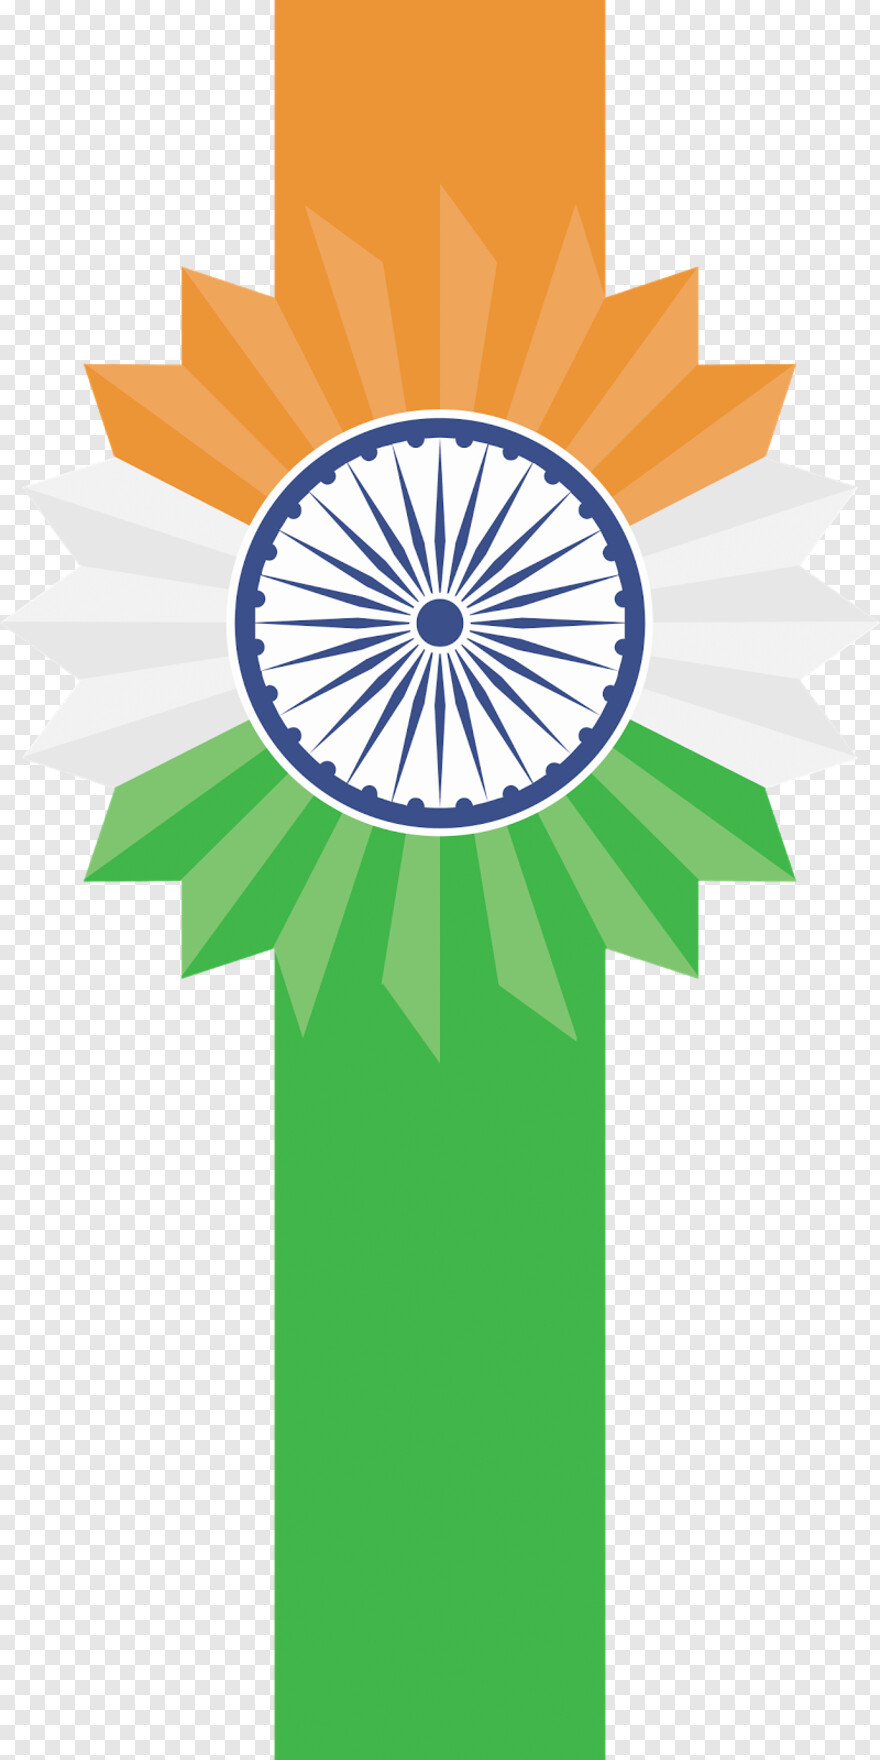 Indian Flag Independence Day India 2018 Png Download 800x1600 1713612 Png Image Pngjoy